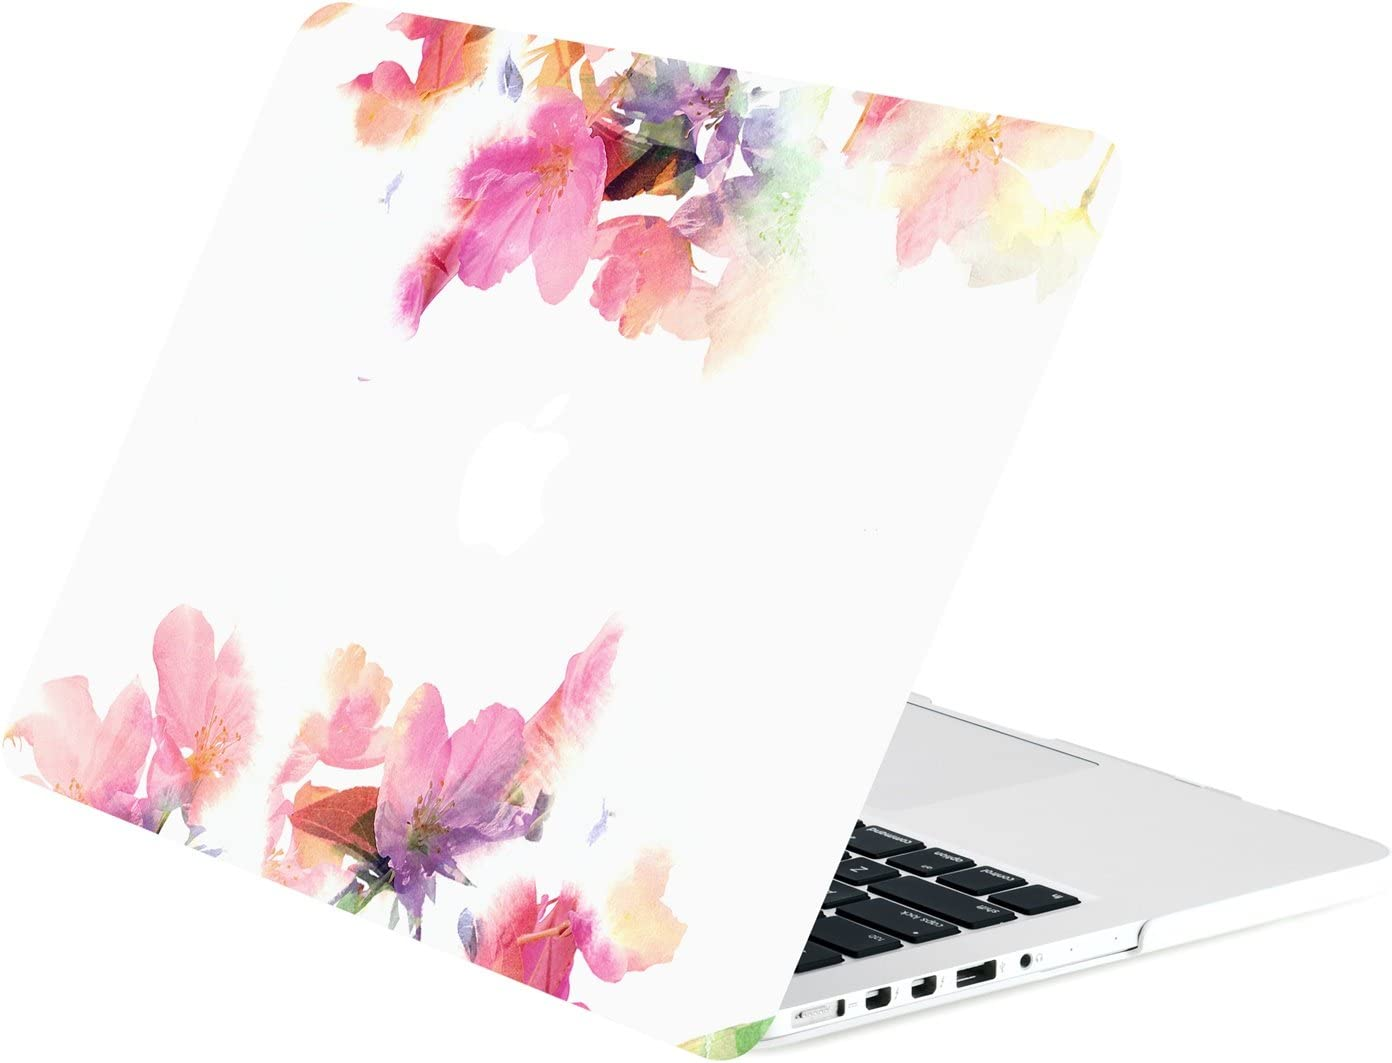 """TOP CASE - Floral Reflection Pattern Graphic Rubberized Hard Case Compatible MacBook Pro 13"""" with Retina Display (Release 2012-2015) Model: A1425 / A1502 – Violet Reflection"""